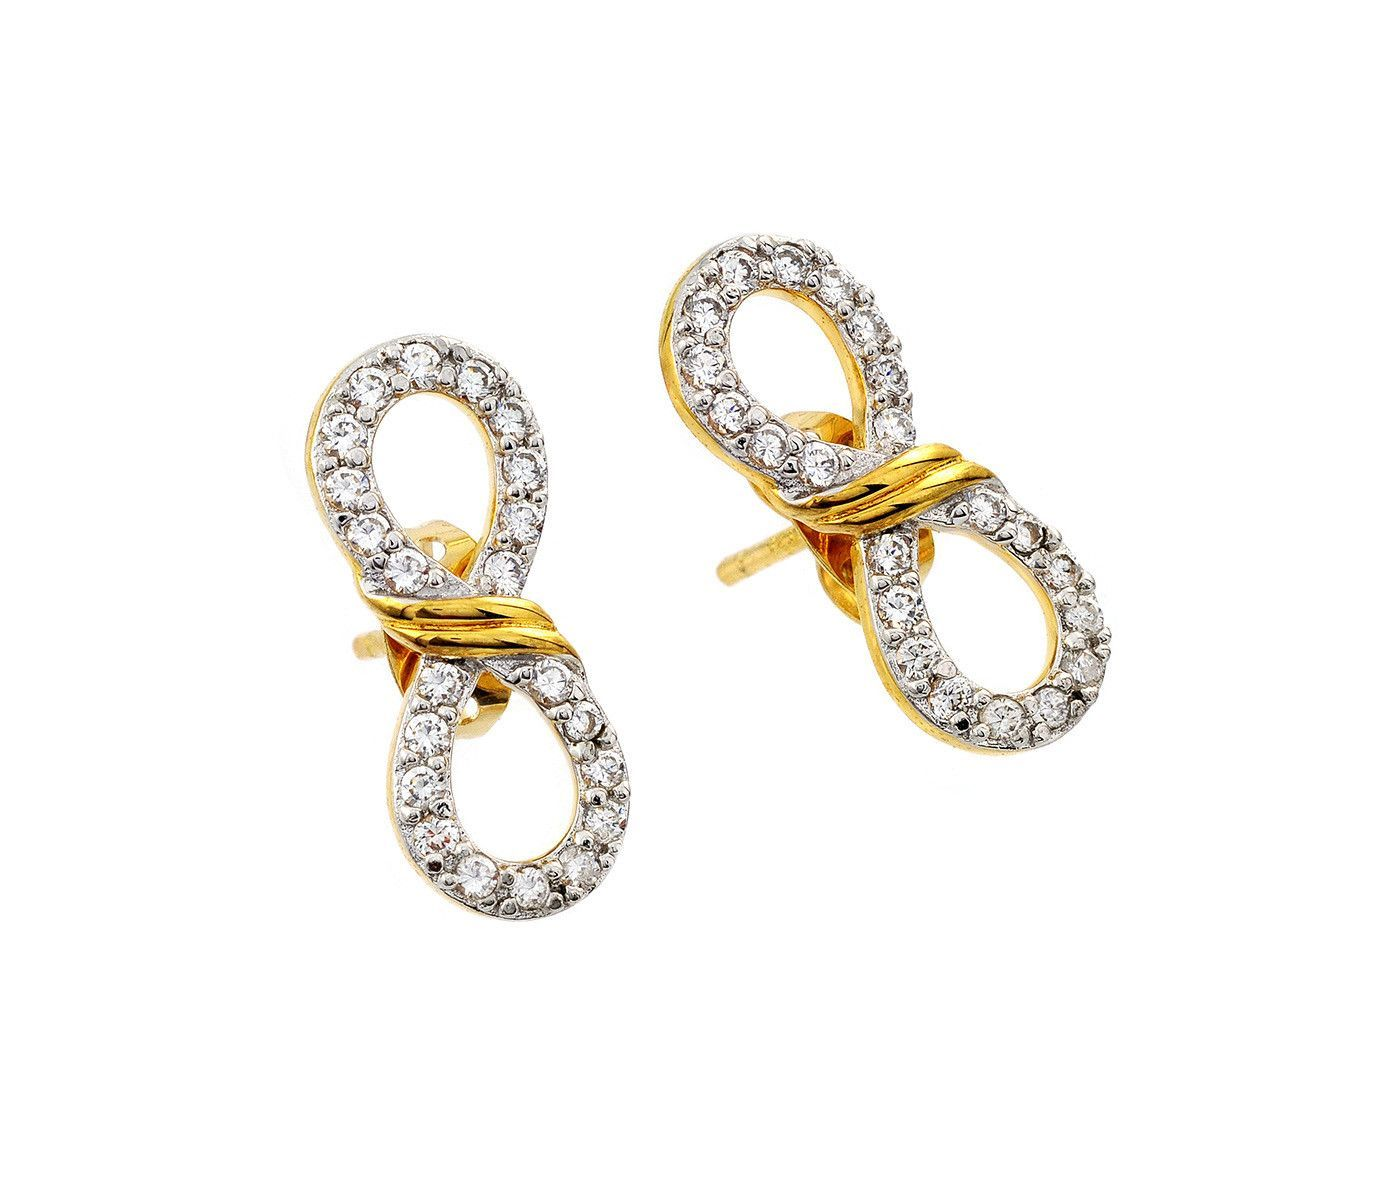 INFINITY GOLD PLATED 925 STERLING SILVER EARRINGS STUDS WITH ZIRCONIA